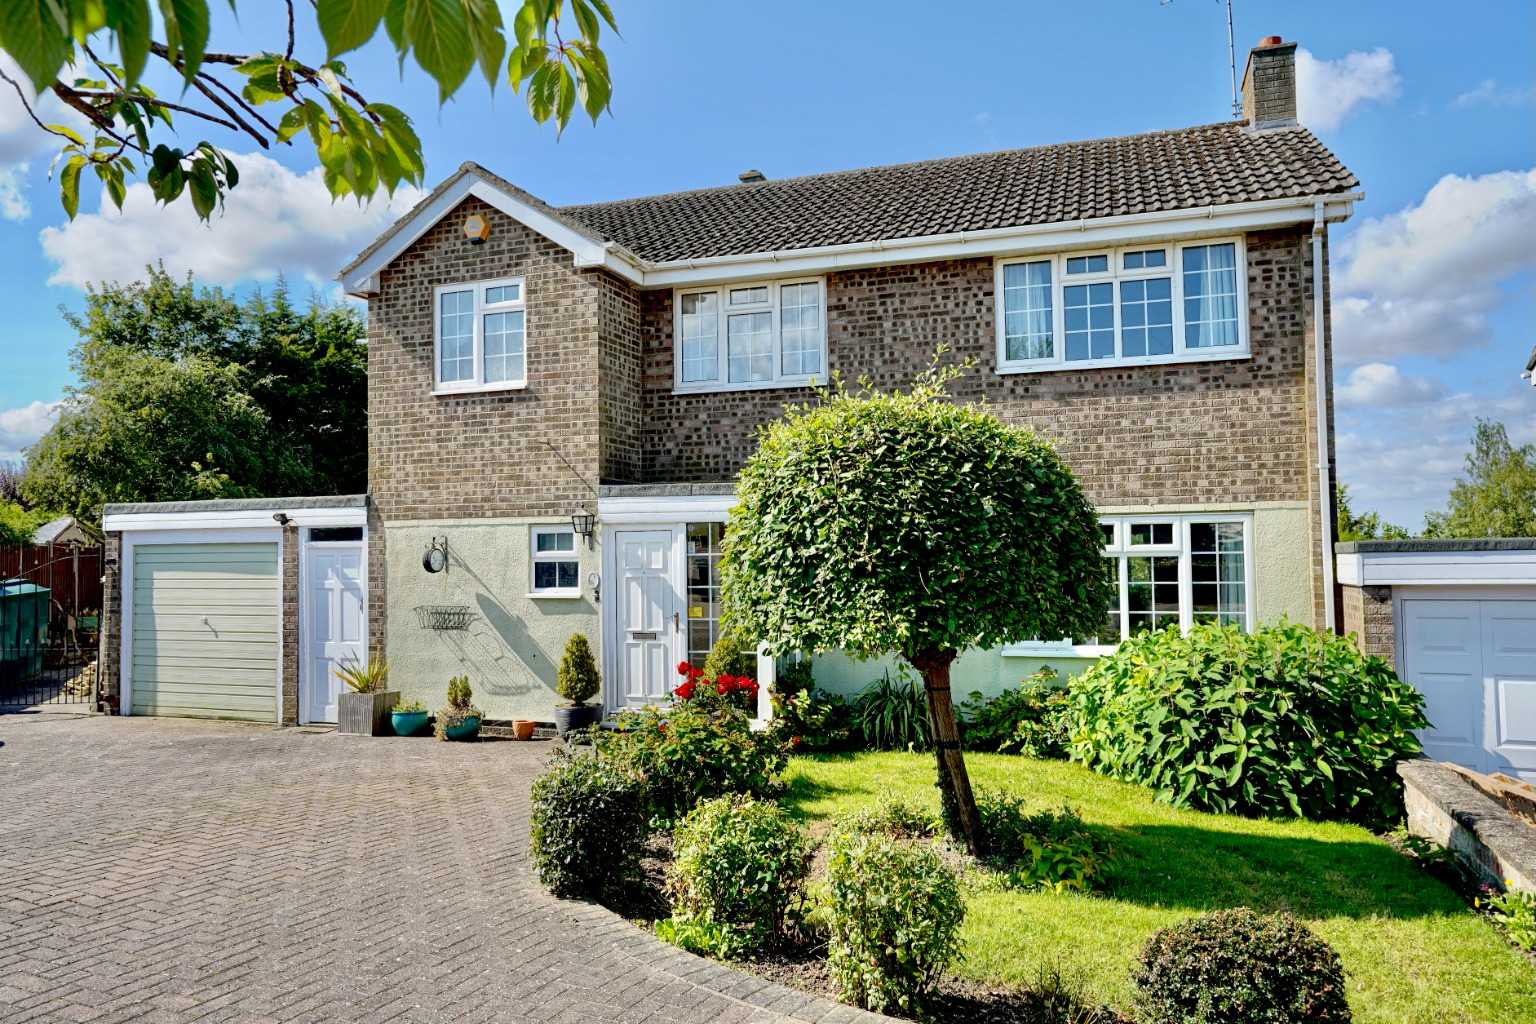 4 bed detached house for sale in Yeomans Close, Huntingdon  - Property Image 2